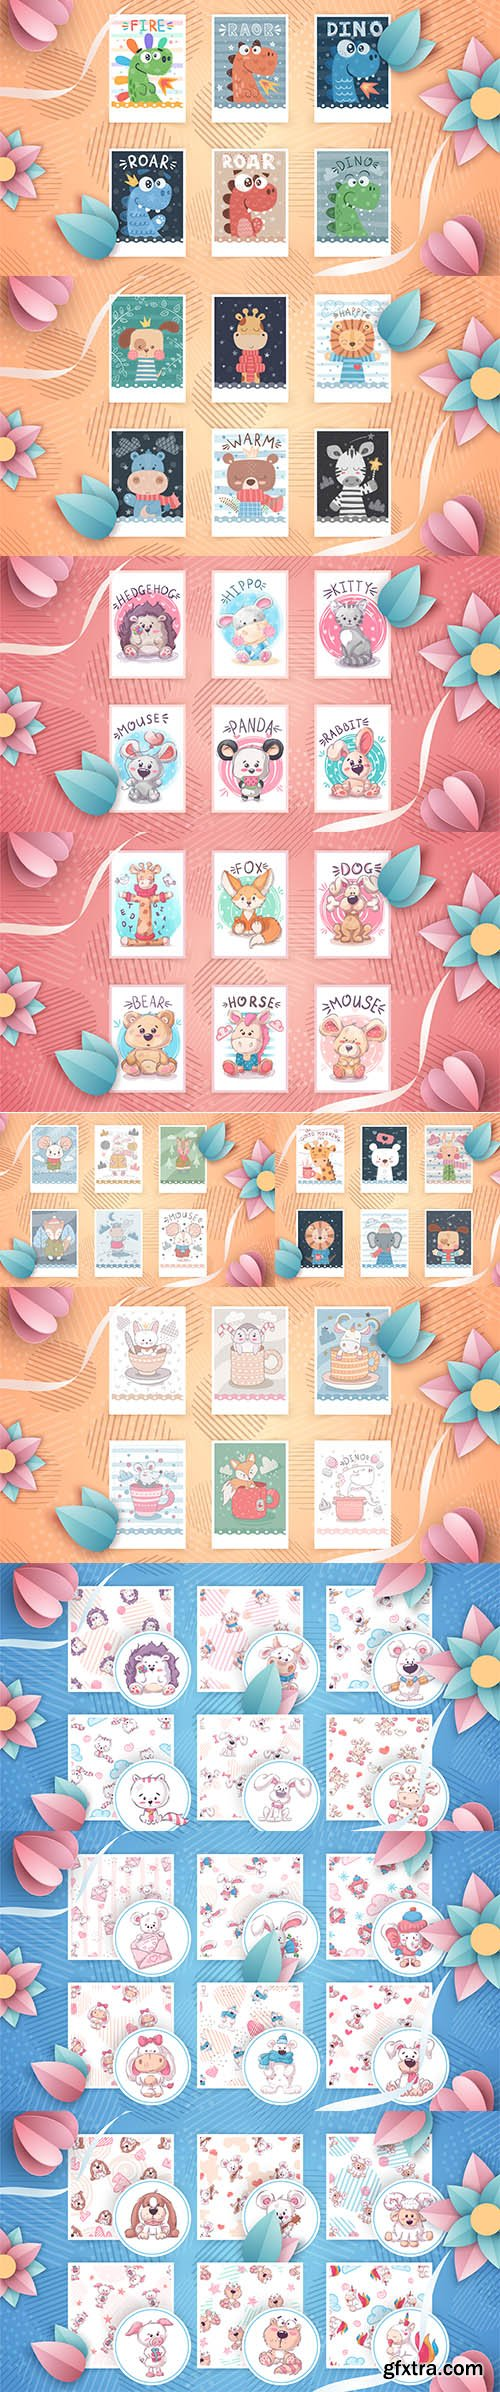 Collection of Little Cute Animals Illustration and Seamless Pattern